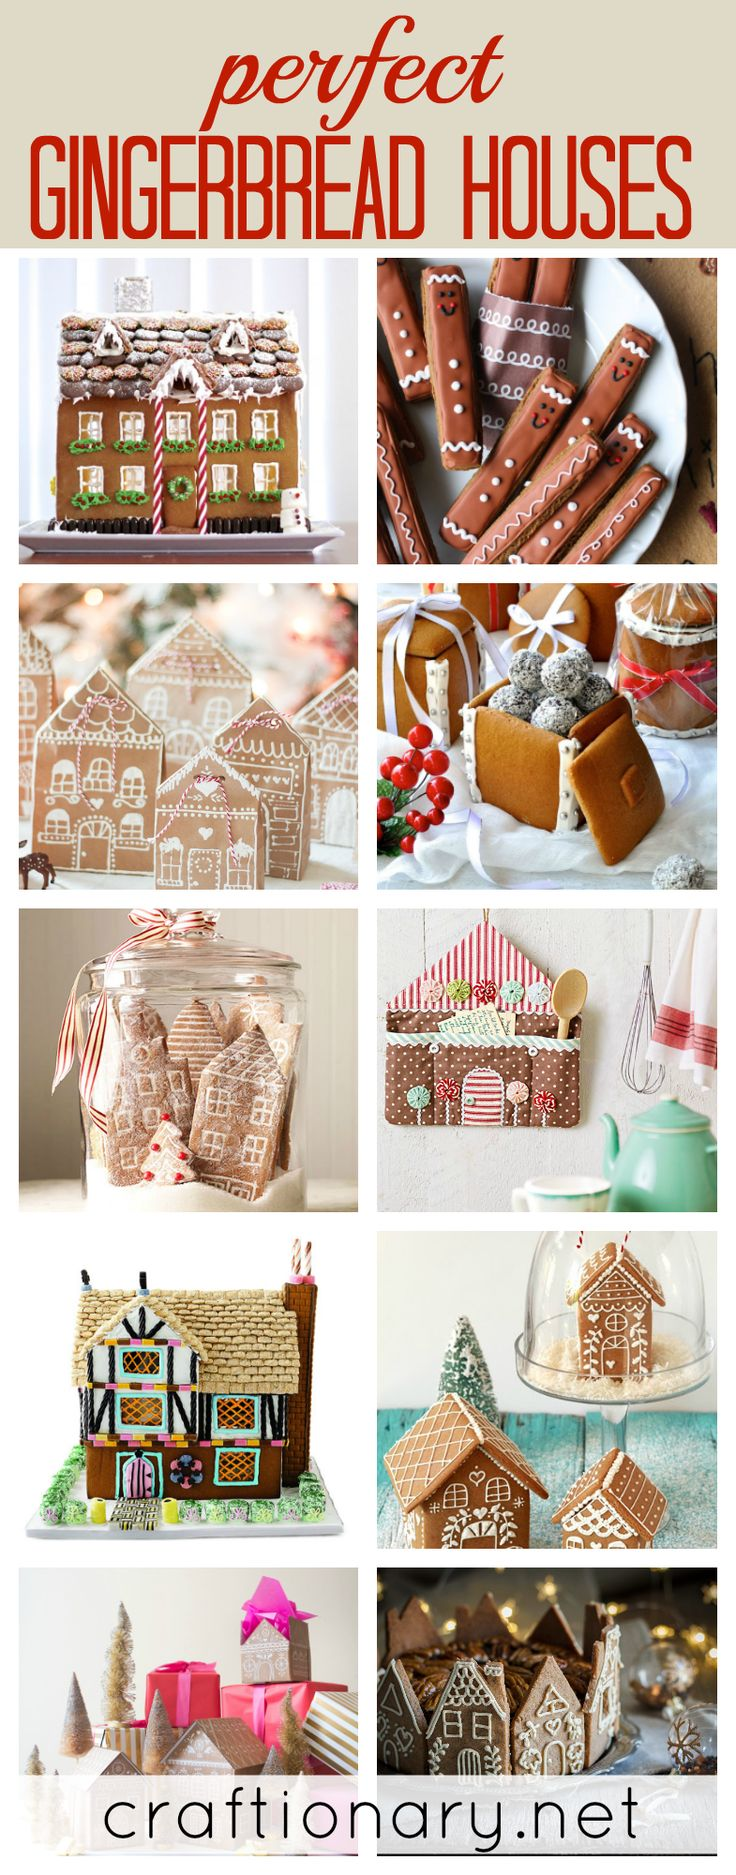 Perfect gingerbread houses recipes